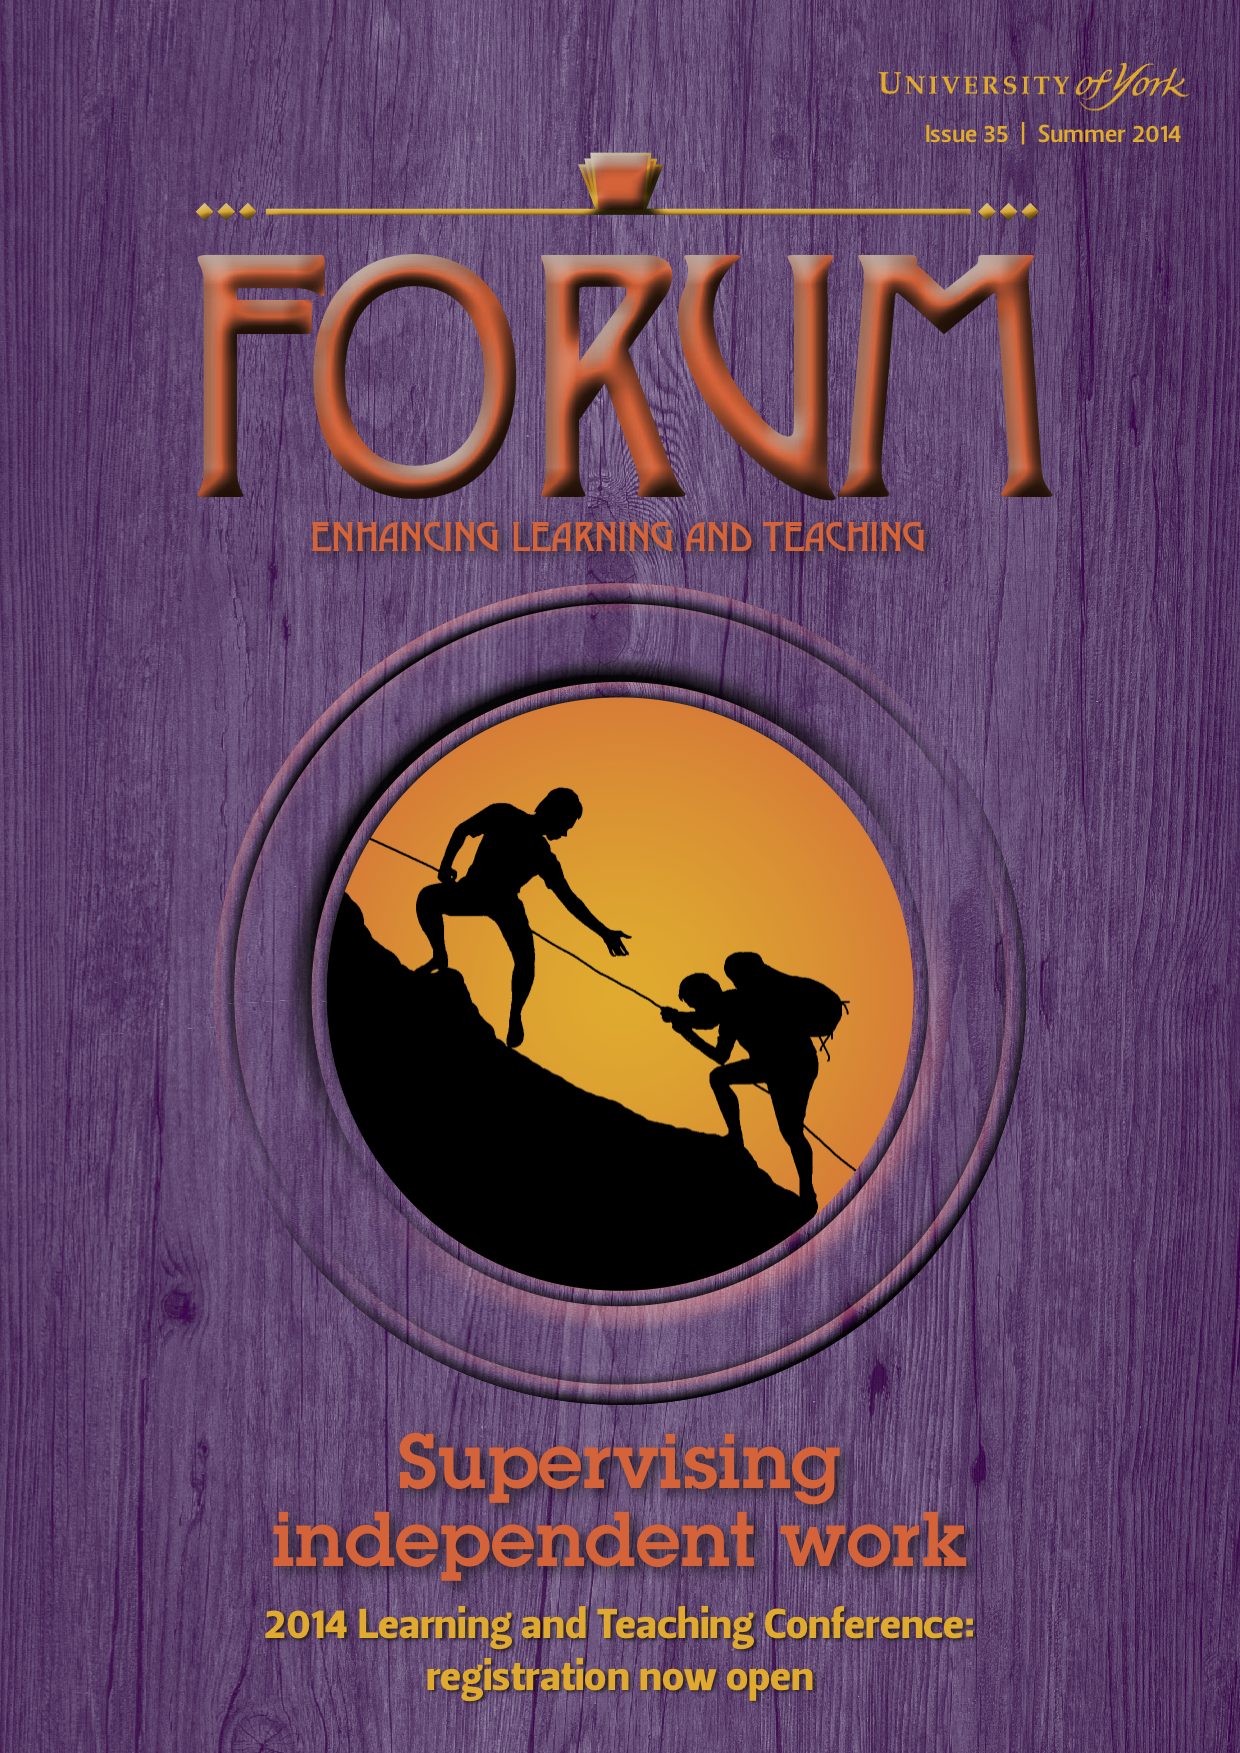 239775801-University-of-York-Forum-Issue-35-Summer-2014